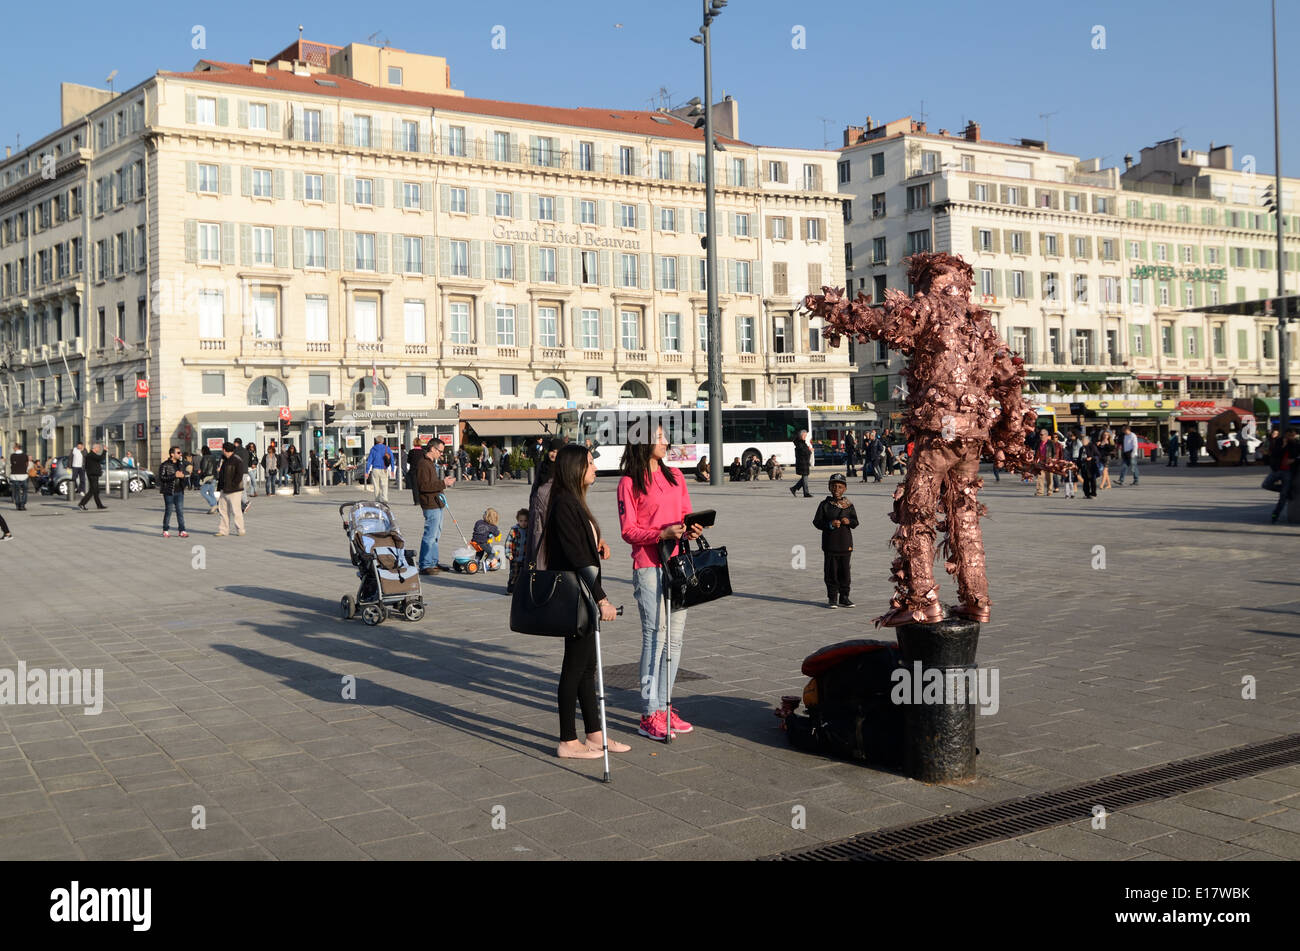 Tourists Watching Living Sculpture Performing or Street Theater on the Quay or Quai des Belges Marseille or Marseilles France - Stock Image